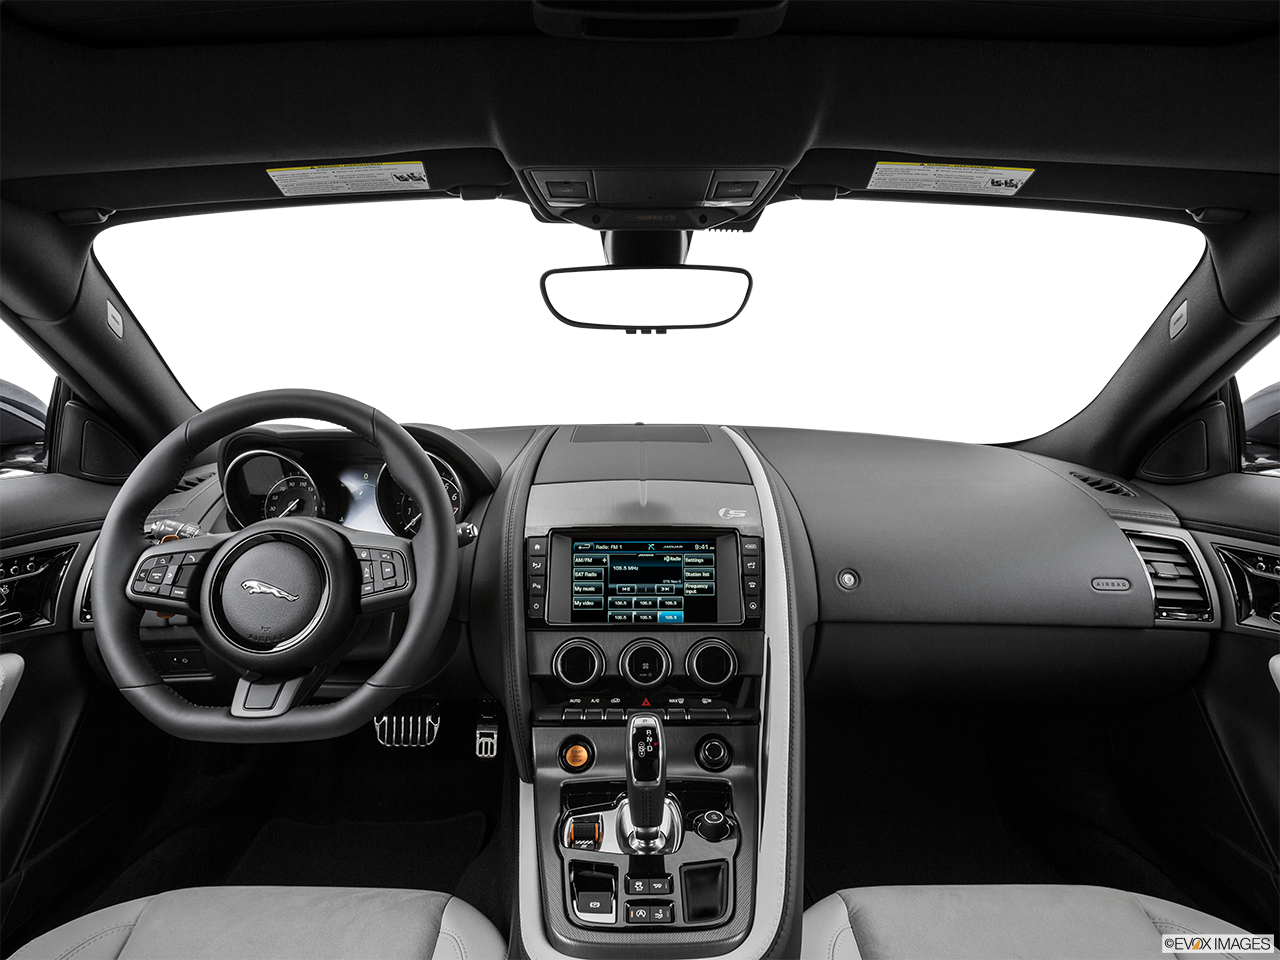 Interior View Of 2016 Jaguar F-Type in Los Angeles